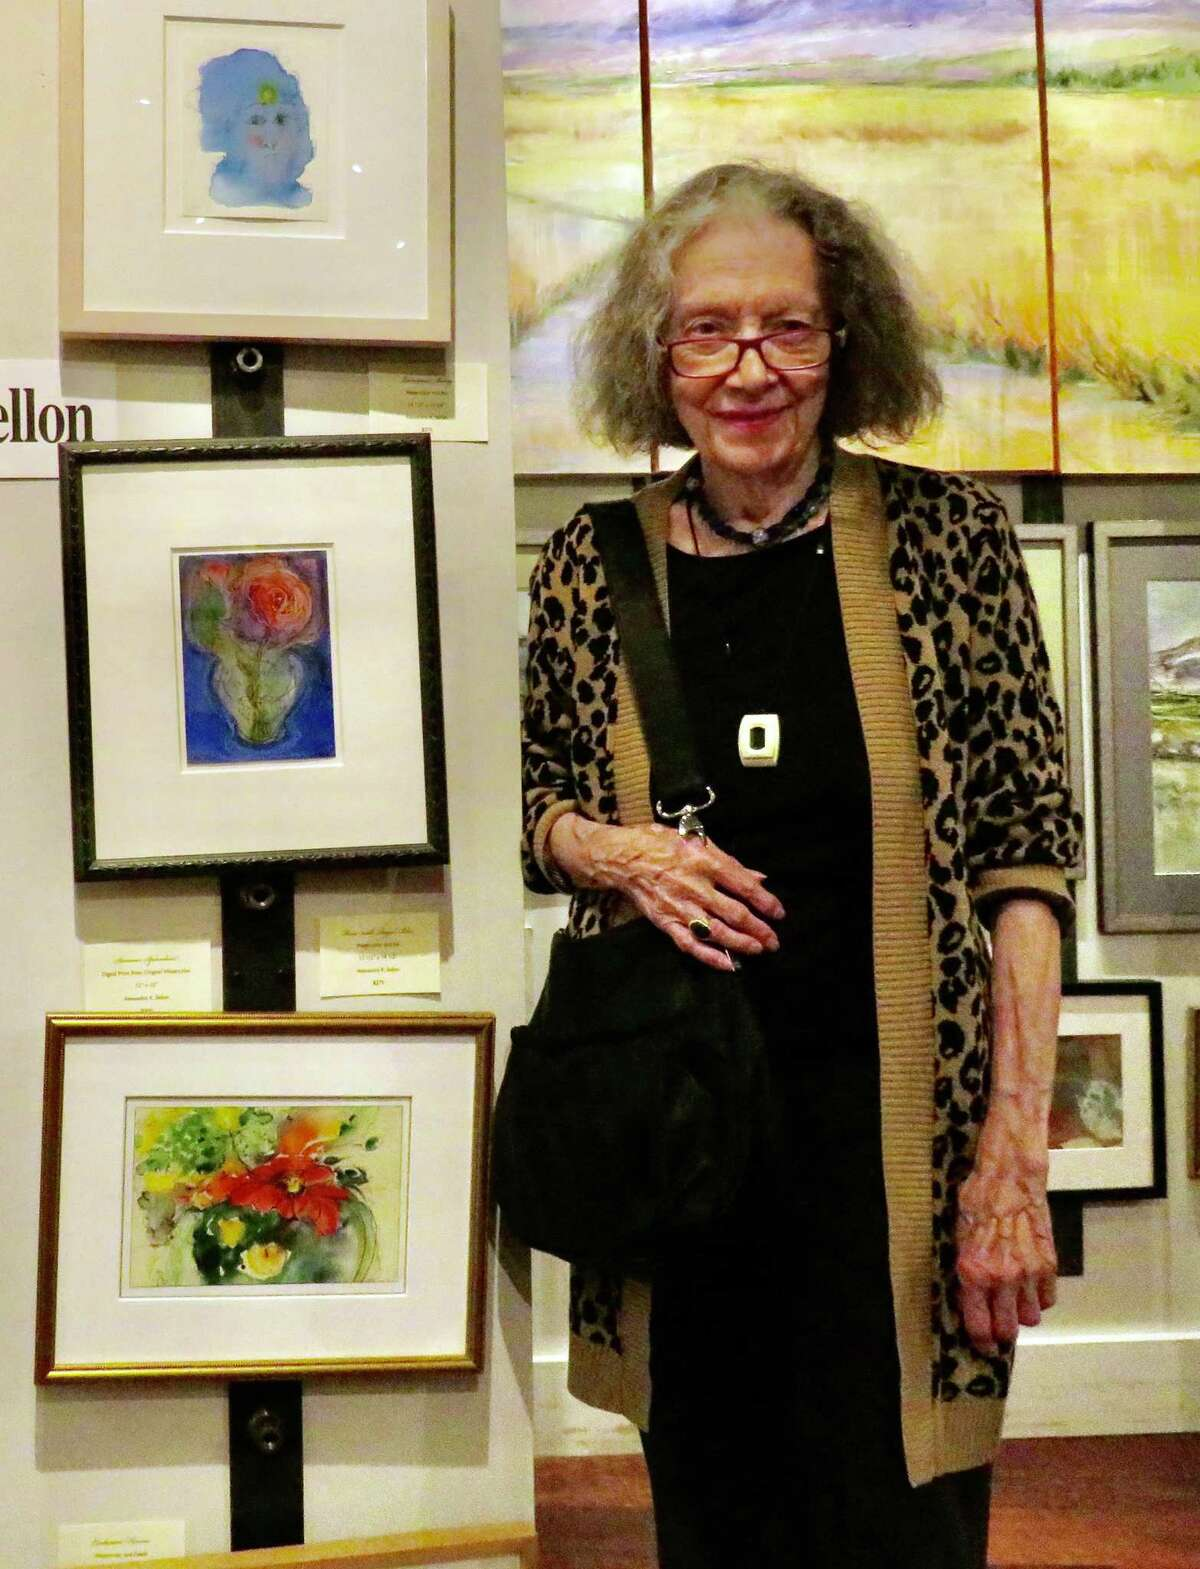 Watercolorist Alexandra K. Sellon at opening for BACA fall gallery exhibit on Branford's Main Street.